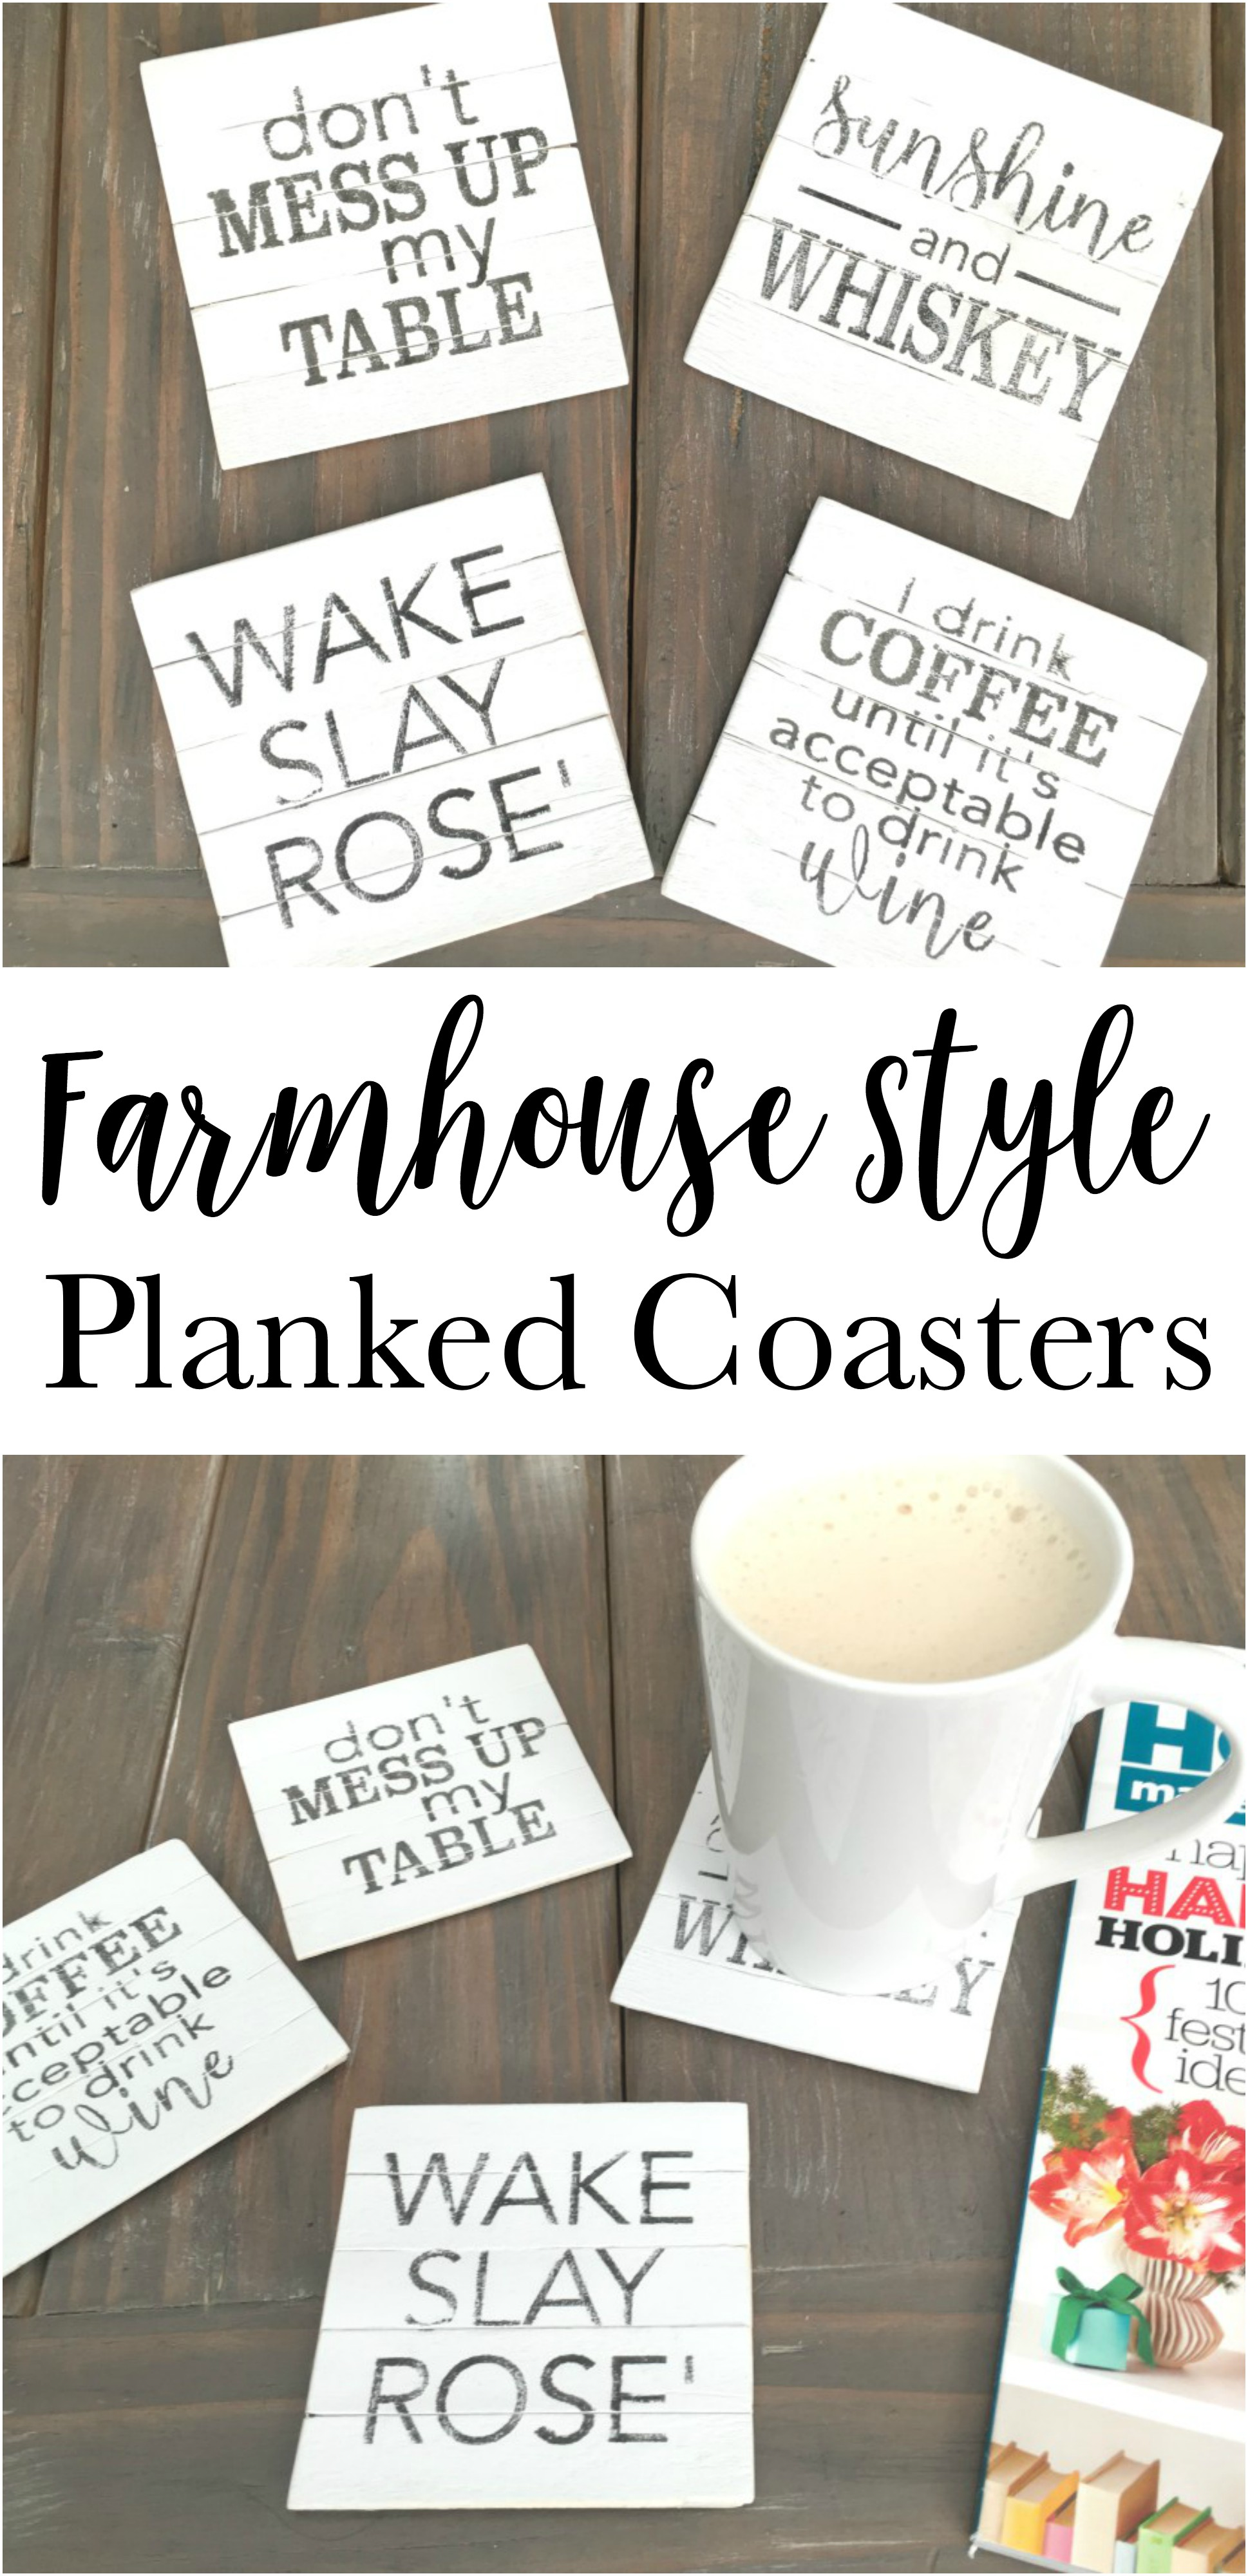 Make your own Farmhouse Style Planked Coasters out of craft wood sticks. Free graphic images.